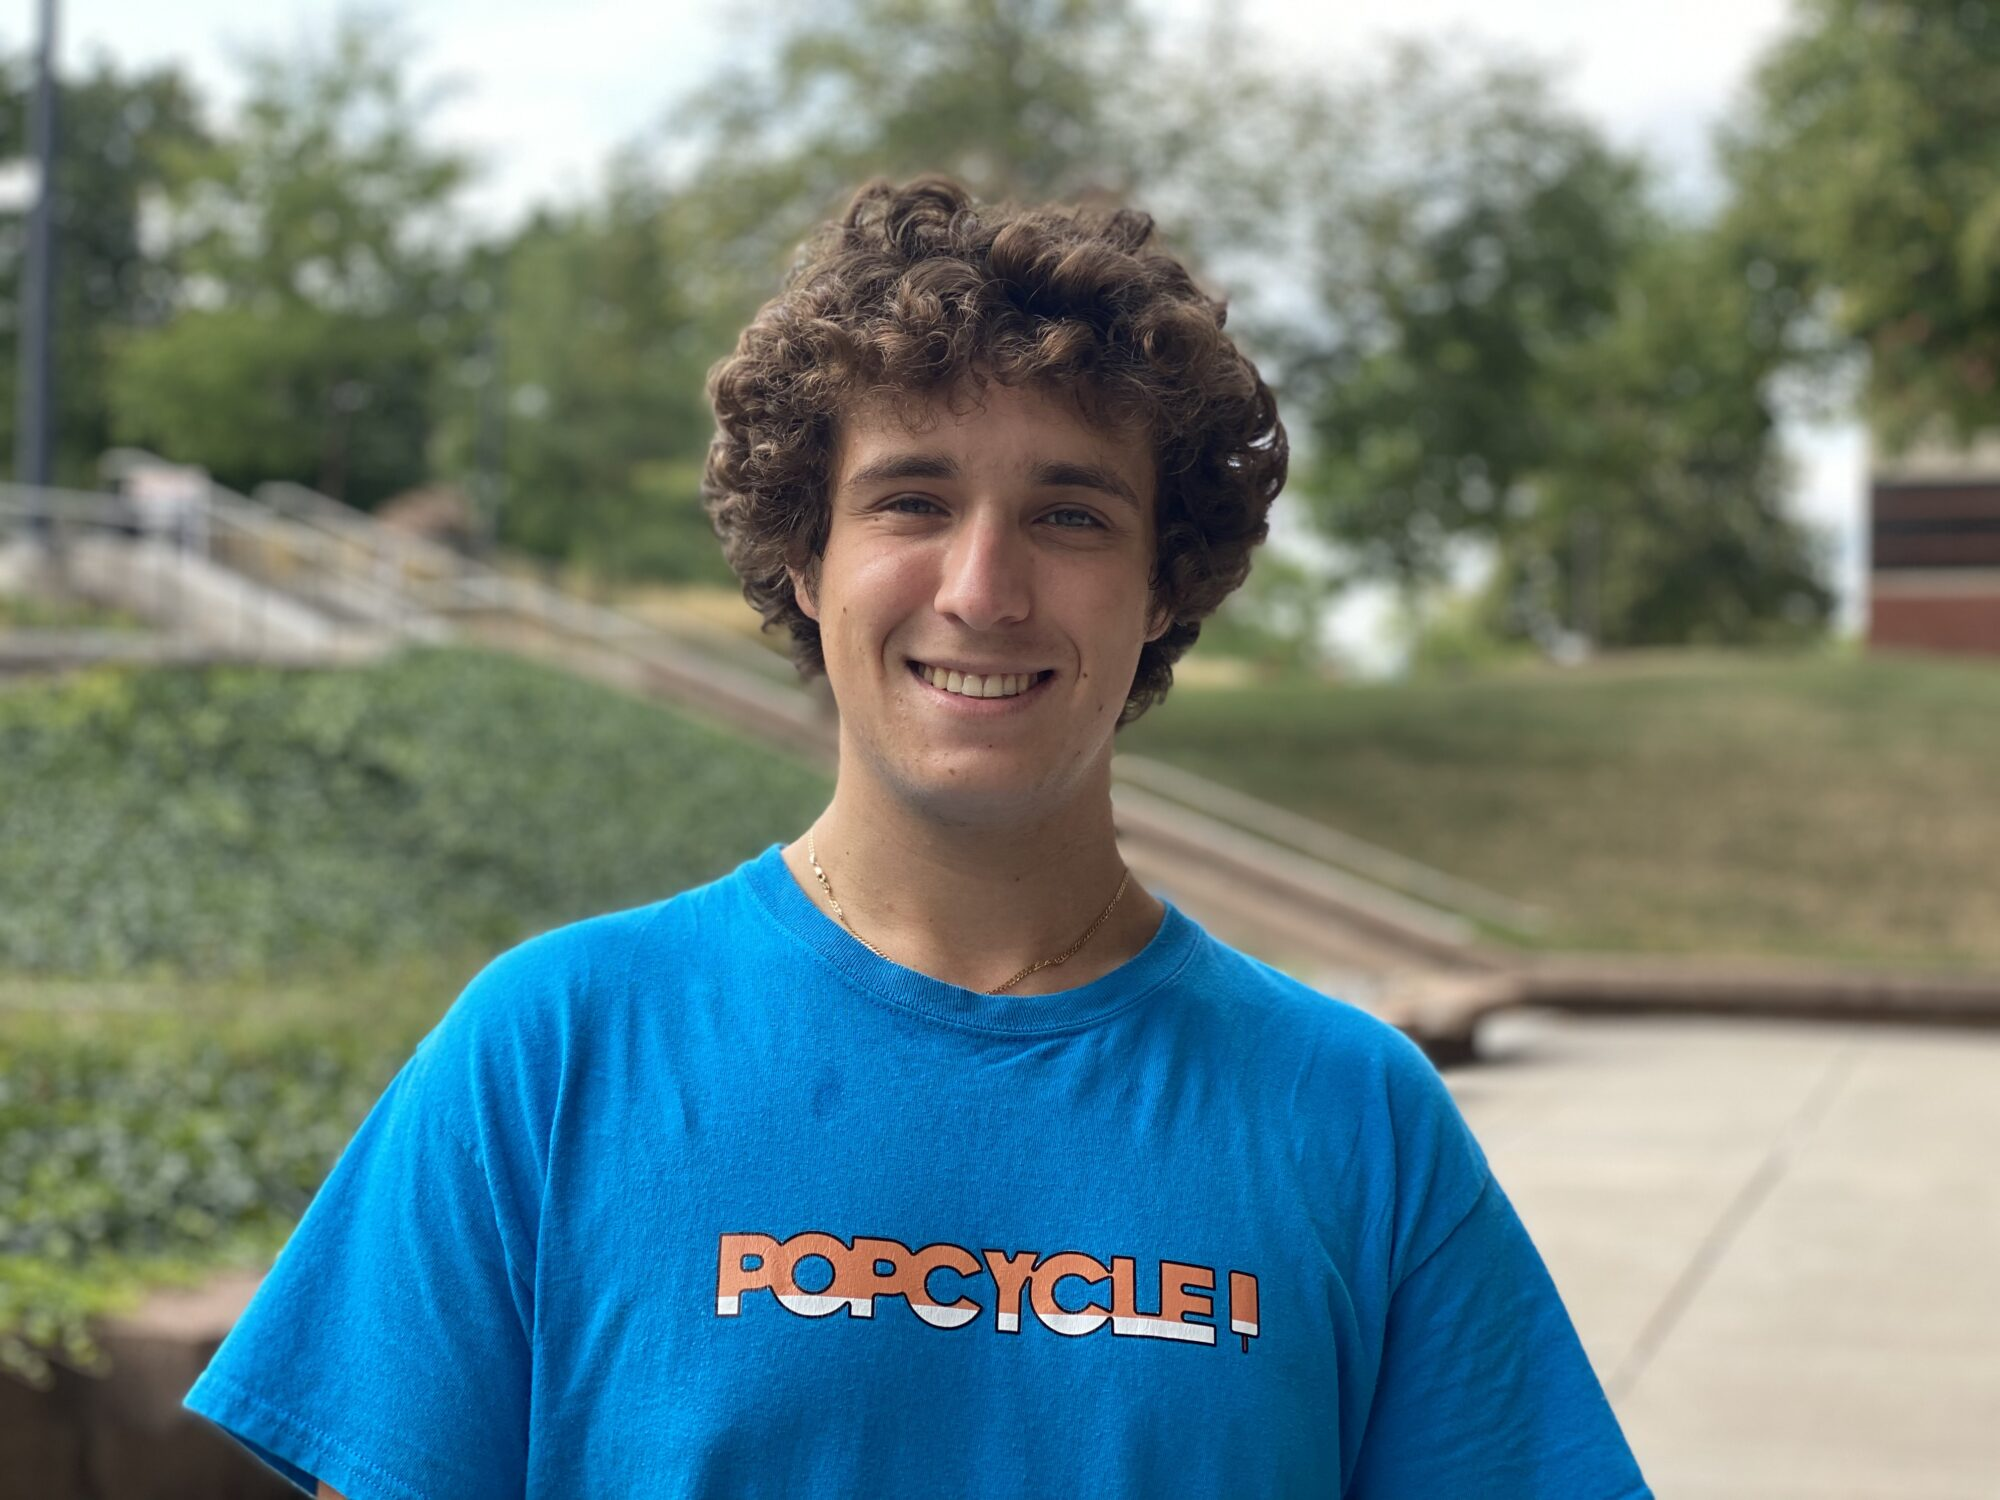 student in a blue POPCYCLE brand shirt